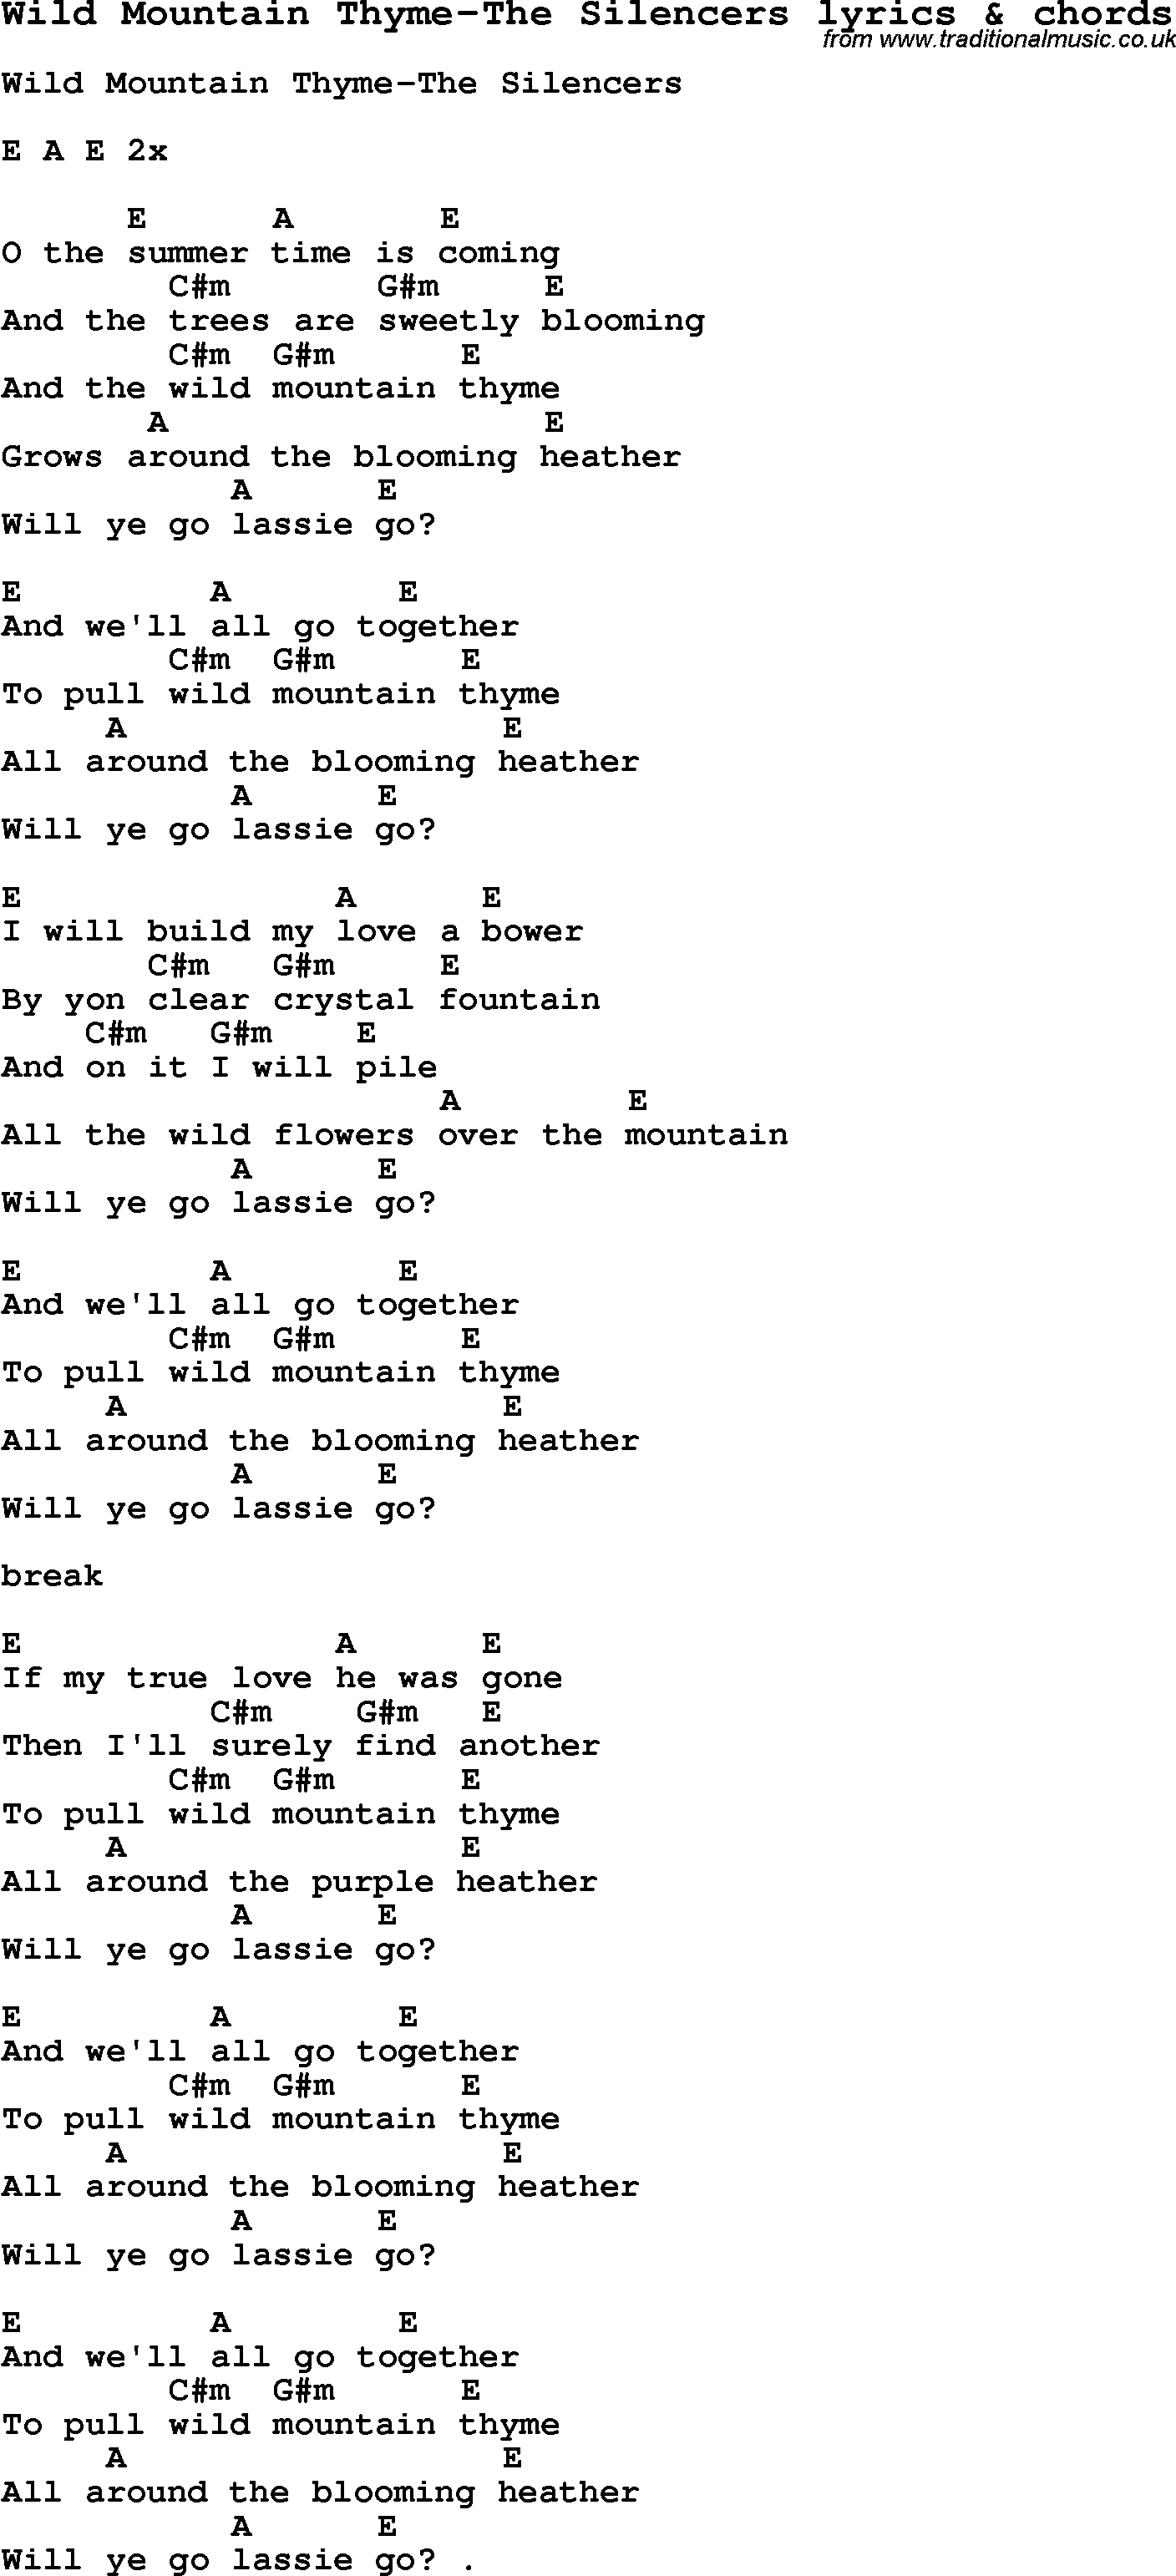 Love Song Lyrics For Wild Mountain Thyme The Silencers With Chords